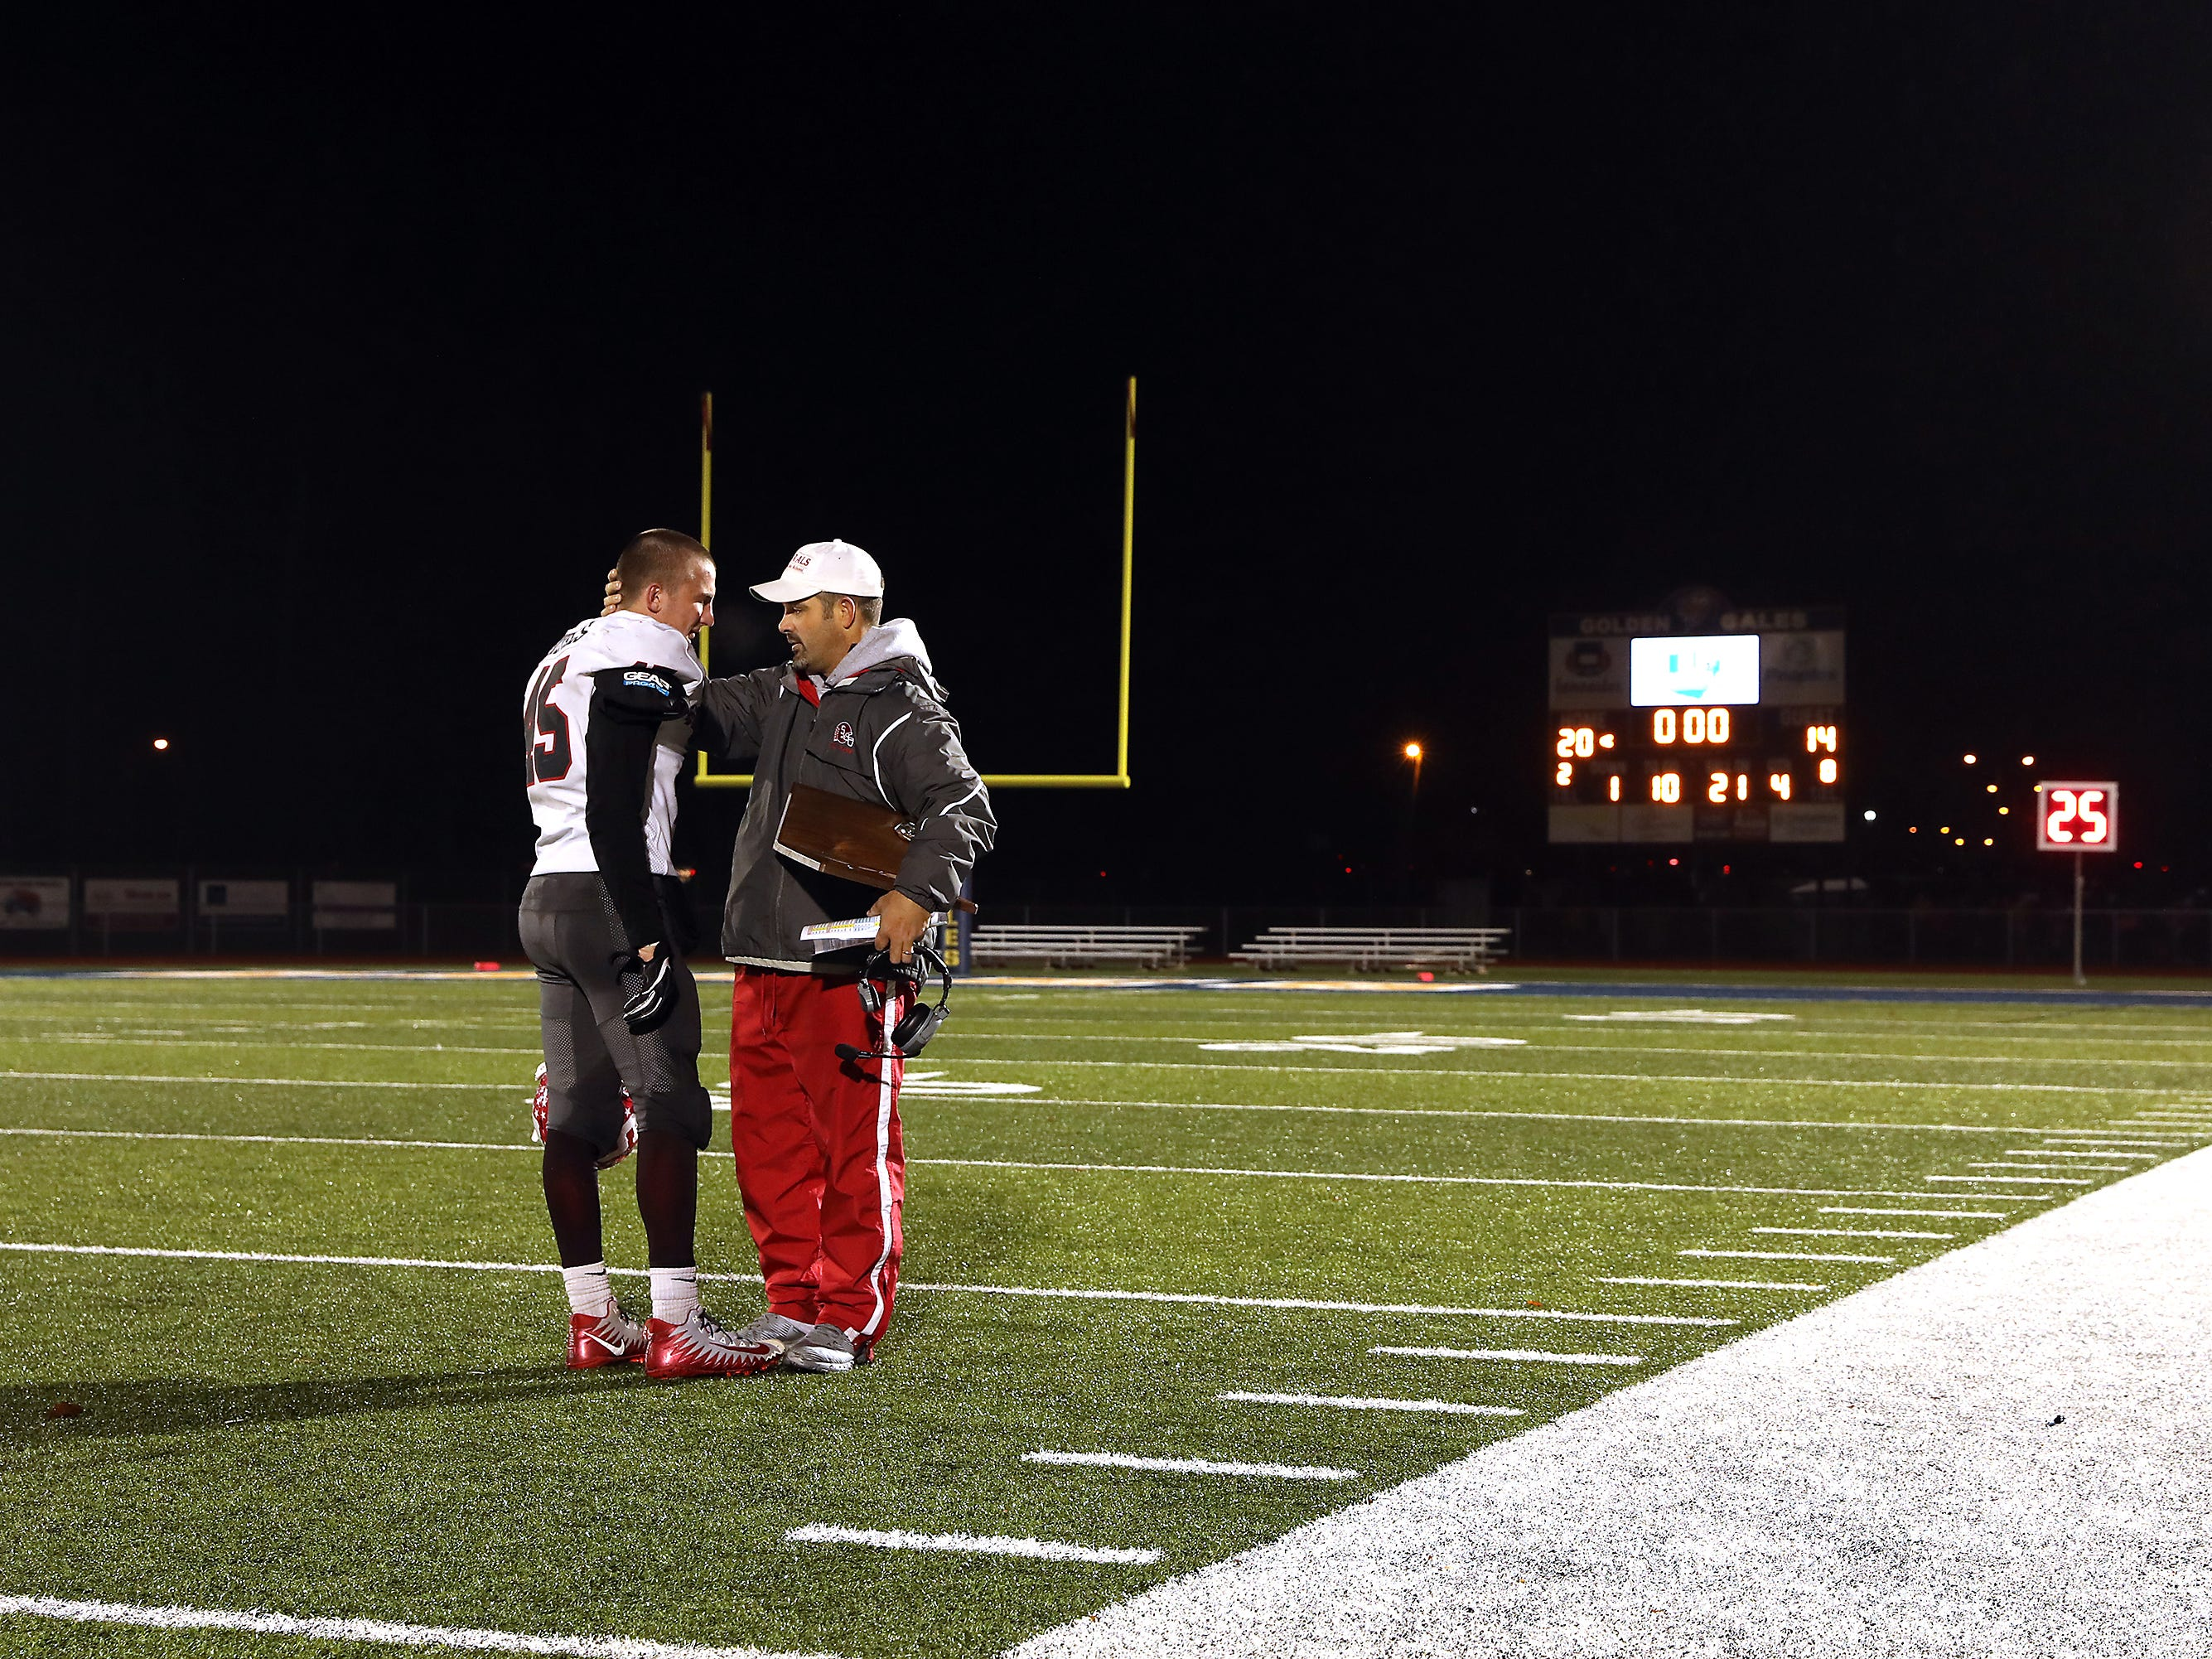 Sheridan head coach Paul Culver III talks to one of his players after the Generals fell to Eastmoor.